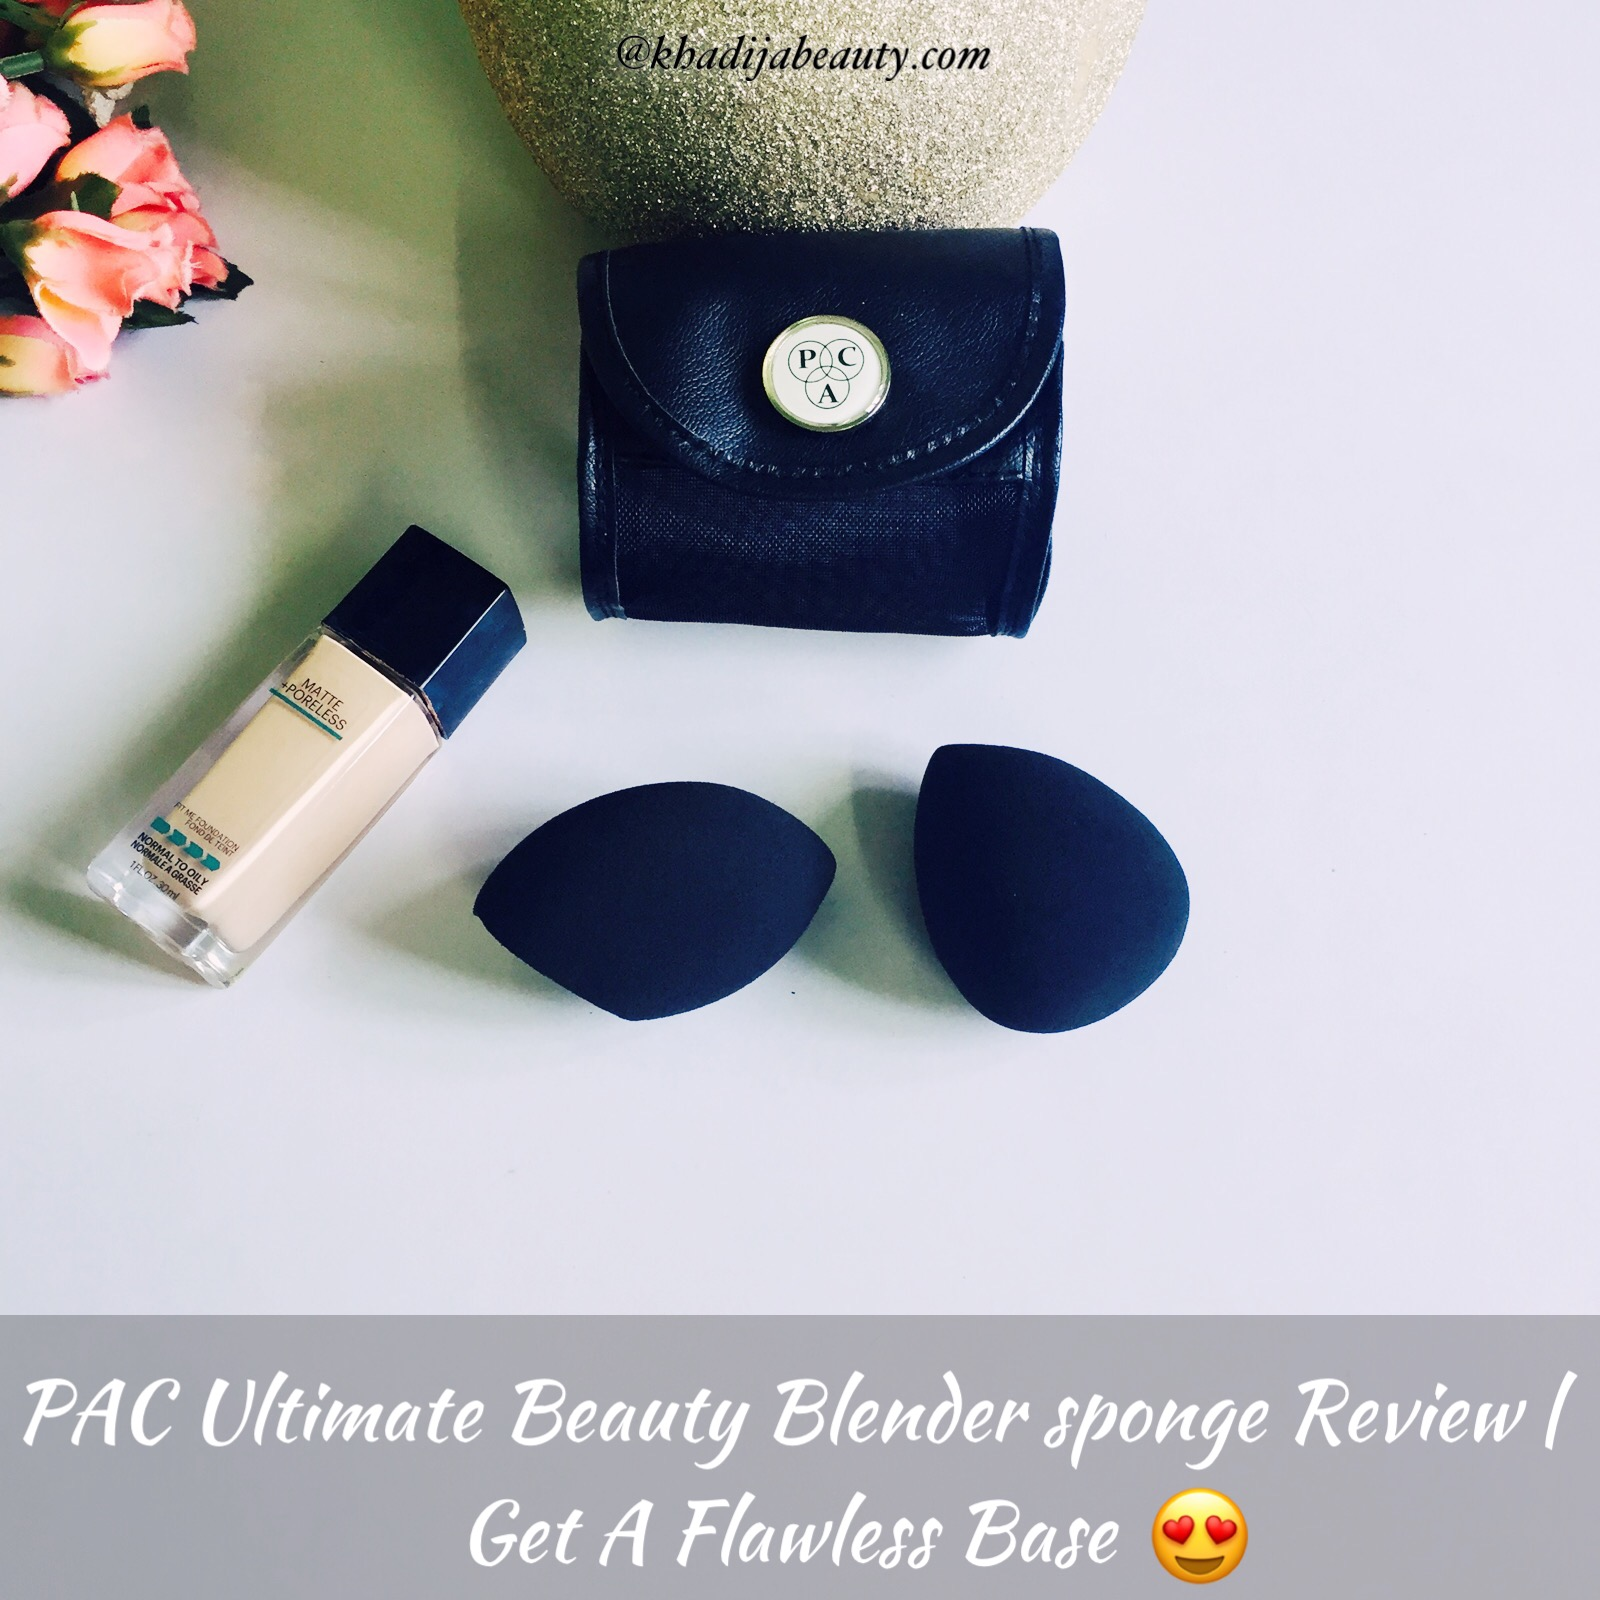 PAC Ultimate Beauty Blender Sponge Review| Get a flawless base